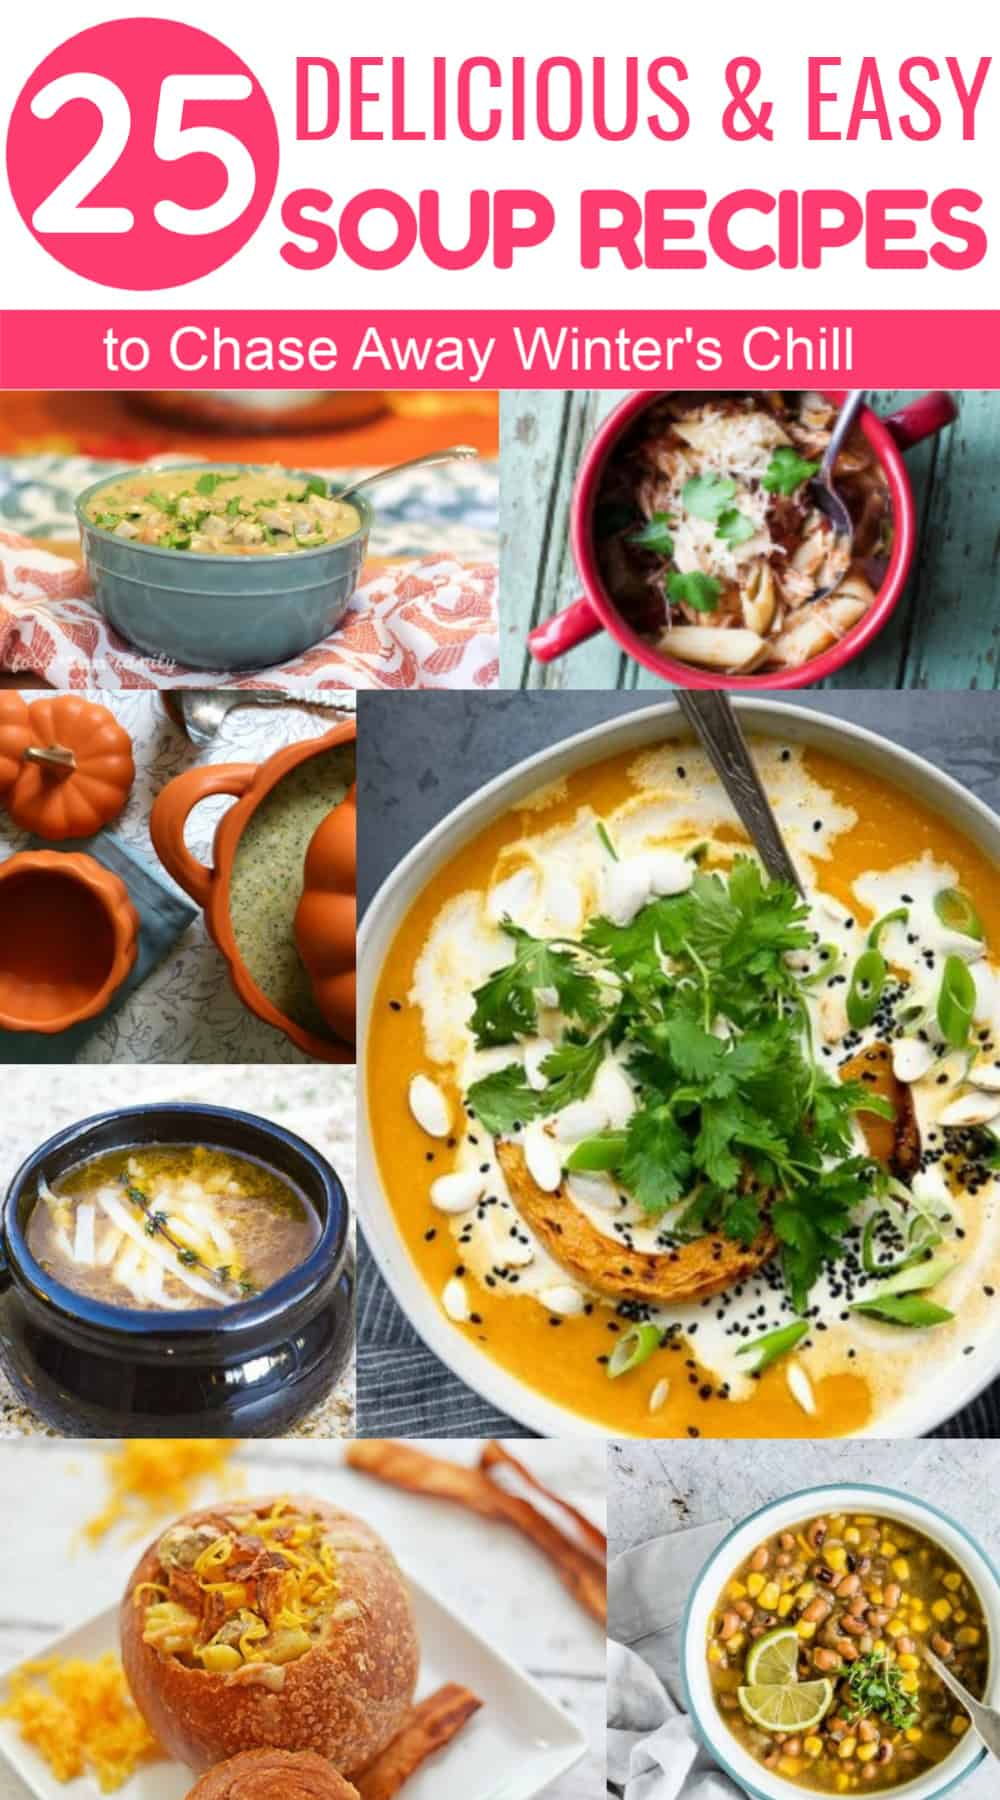 Get ready to chase away winter\'s chill with some amazingly delicious soup recipes! From chicken noodle to easy creamy potato to unique soups I never would have thought of, I rounded up 25 of the yummiest ideas. Check them out!